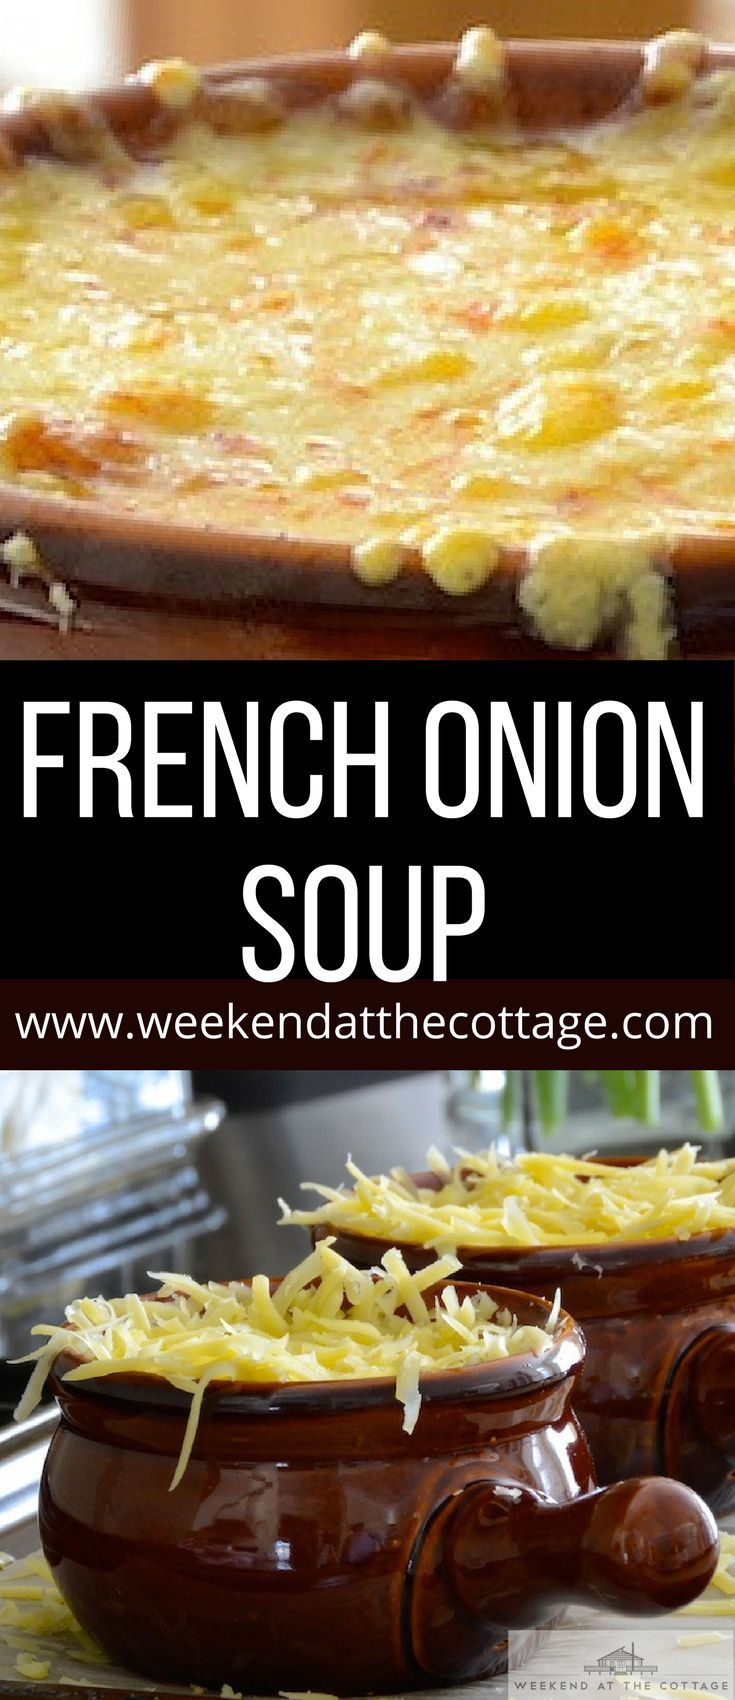 A RICH, FLAVOURFUL SOUP TOPPED WITH CRUSTY FRENCH BREAD AND MELTED GRUYÈRE CHEESE, THIS EASY FRENCH ONION SOUP RECIPE IS PERFECT. Serve as a starter or main course. #frenchonionsoup #easyfrenchonionsoup #onionsoup #howtomakefrenchonionsoup